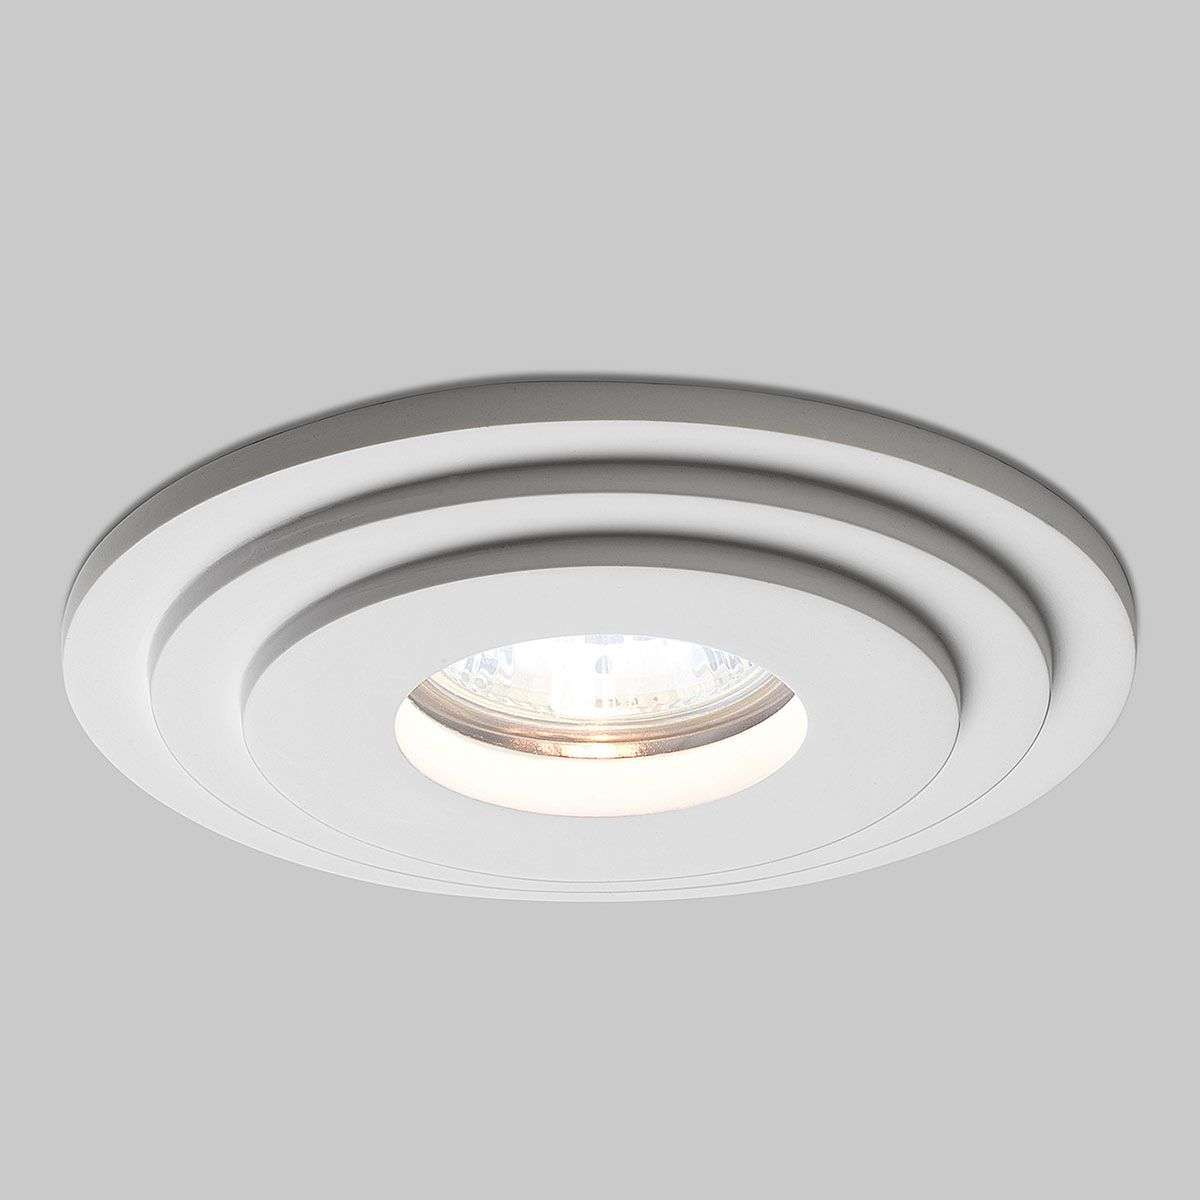 Brembo Built-In Ceiling Light Round Elegant-1020095-32